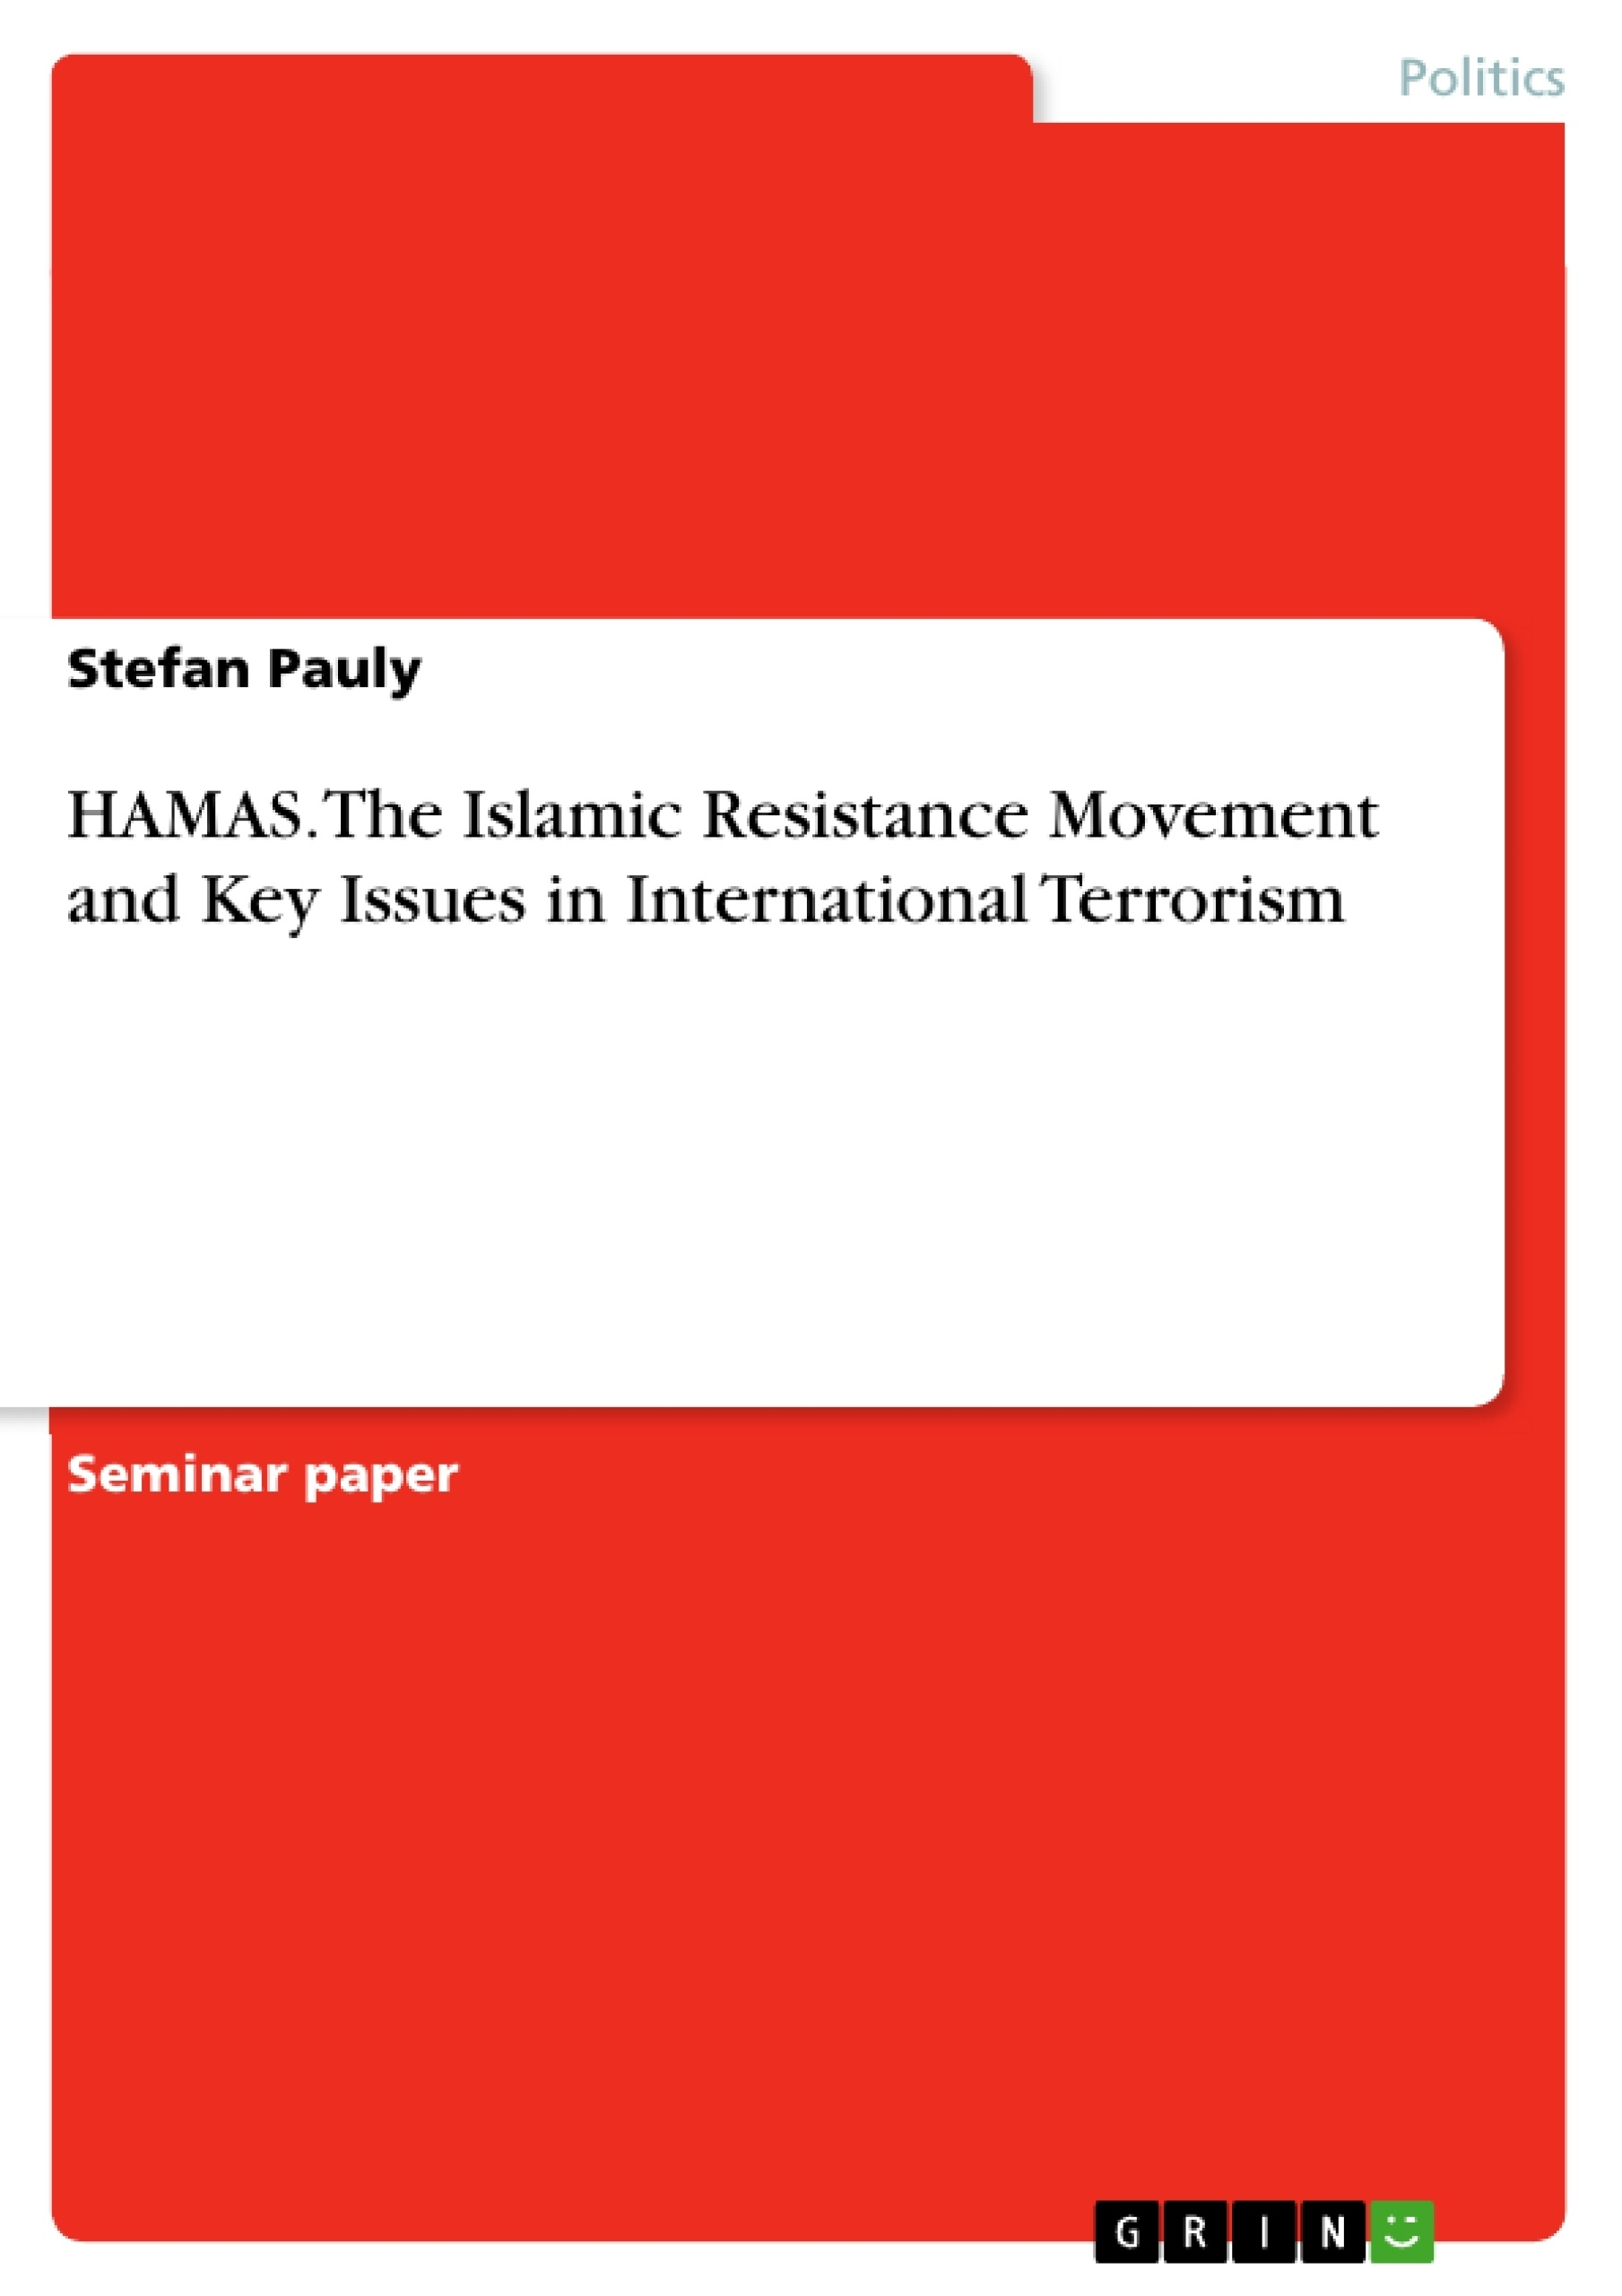 Title: HAMAS. The Islamic Resistance Movement and Key Issues in International Terrorism